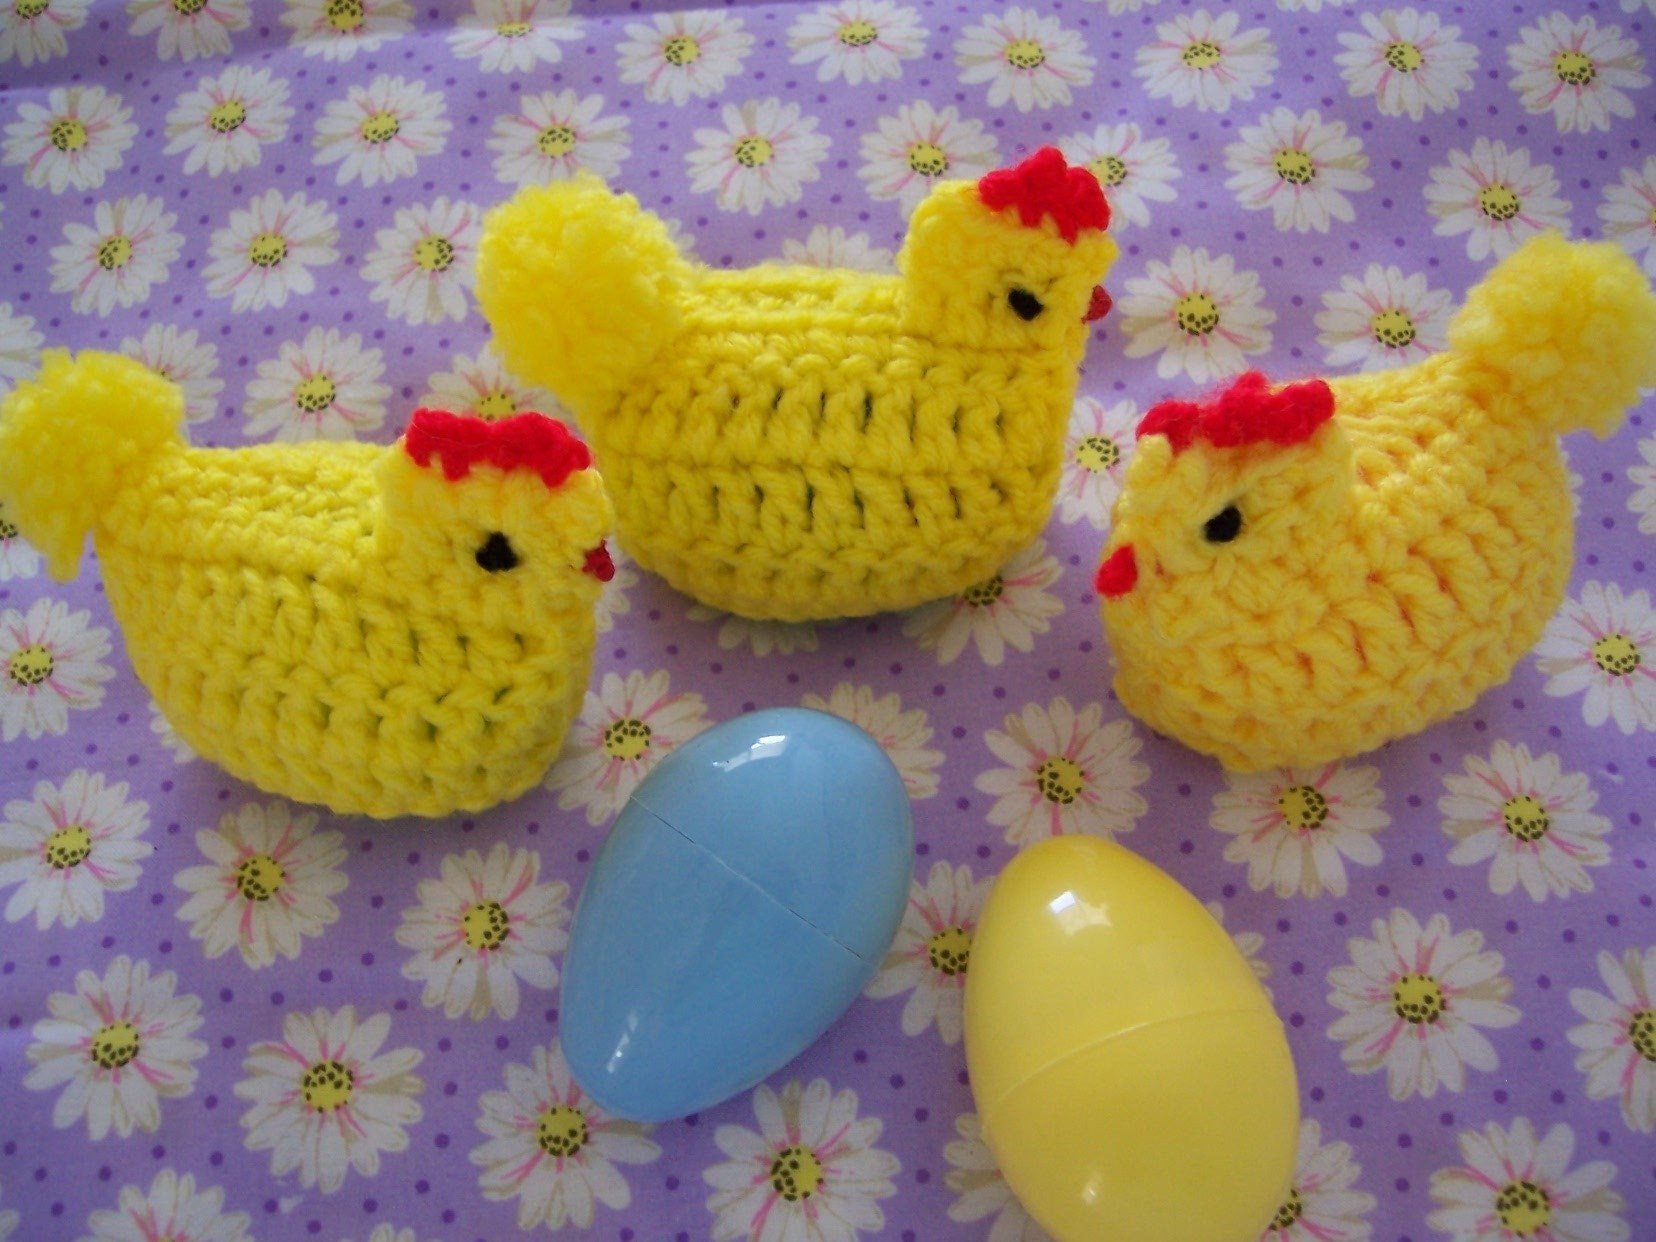 Easter Bunny and Chicks Amigurumi crochet pattern by TigerLilly